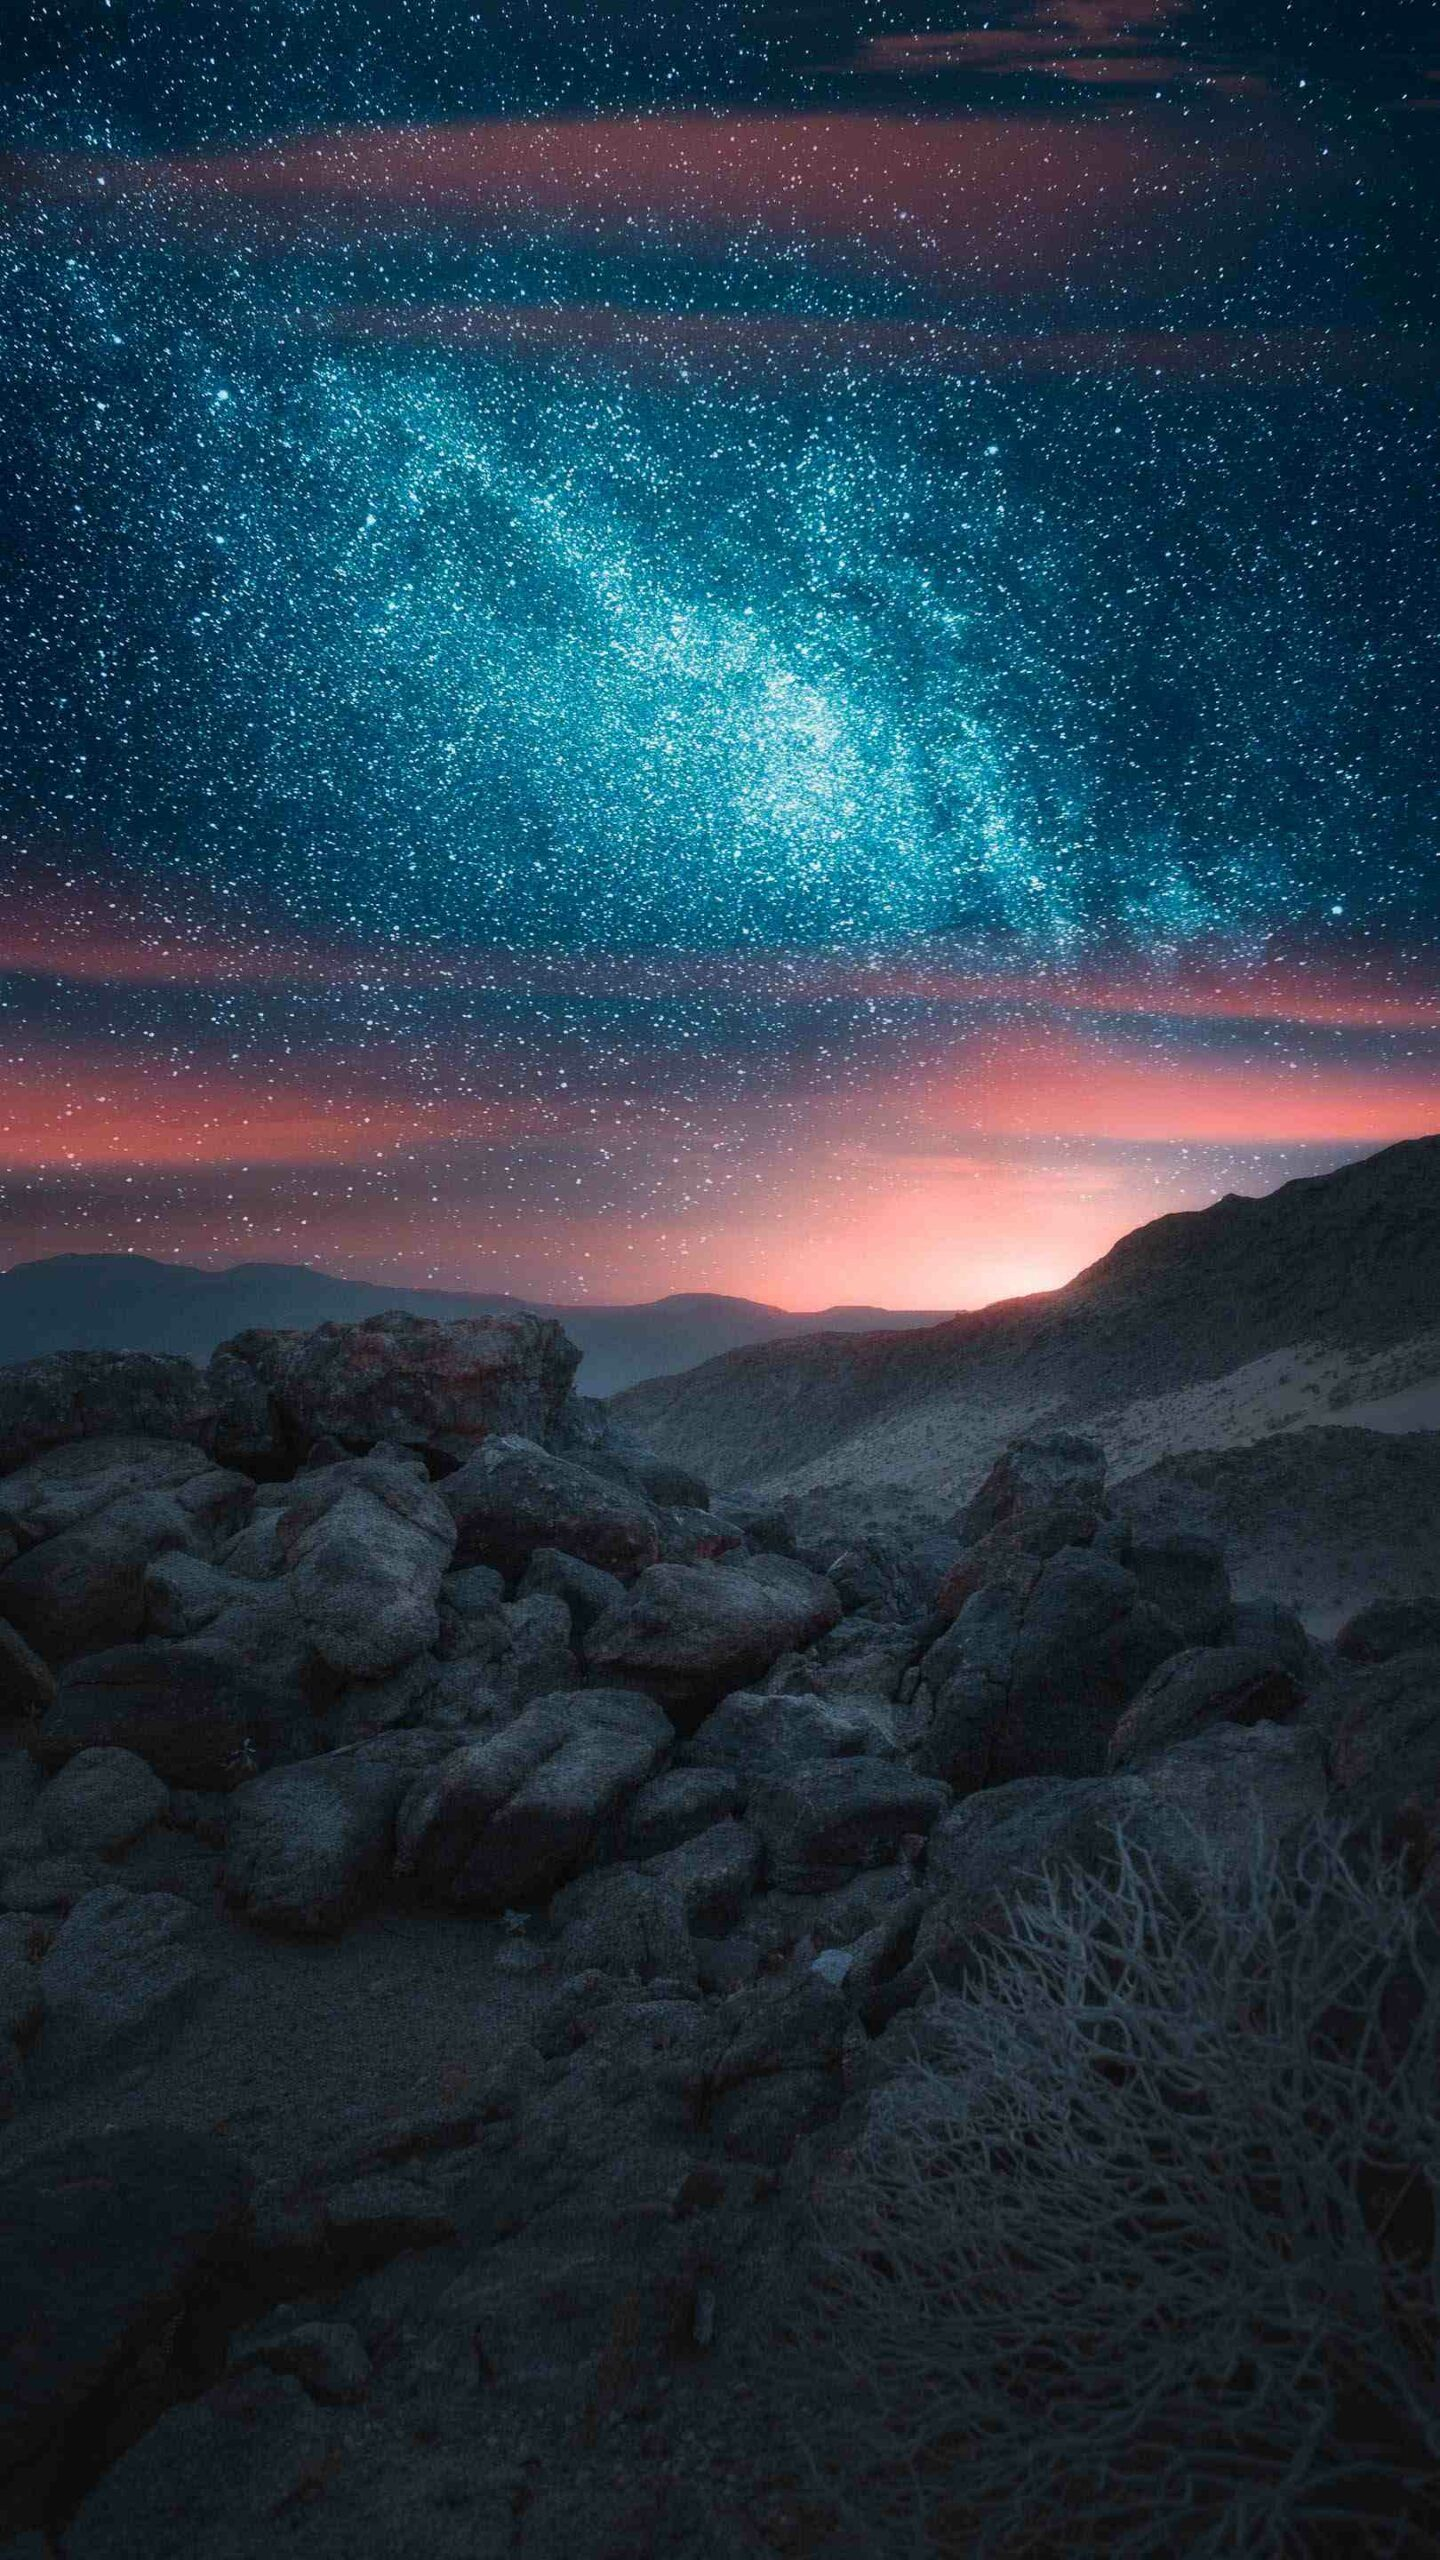 Glimpse Into The Unknown Iphone Wallpaper In 2020 Night Sky Wallpaper Android Wallpaper Hd Wallpaper Android